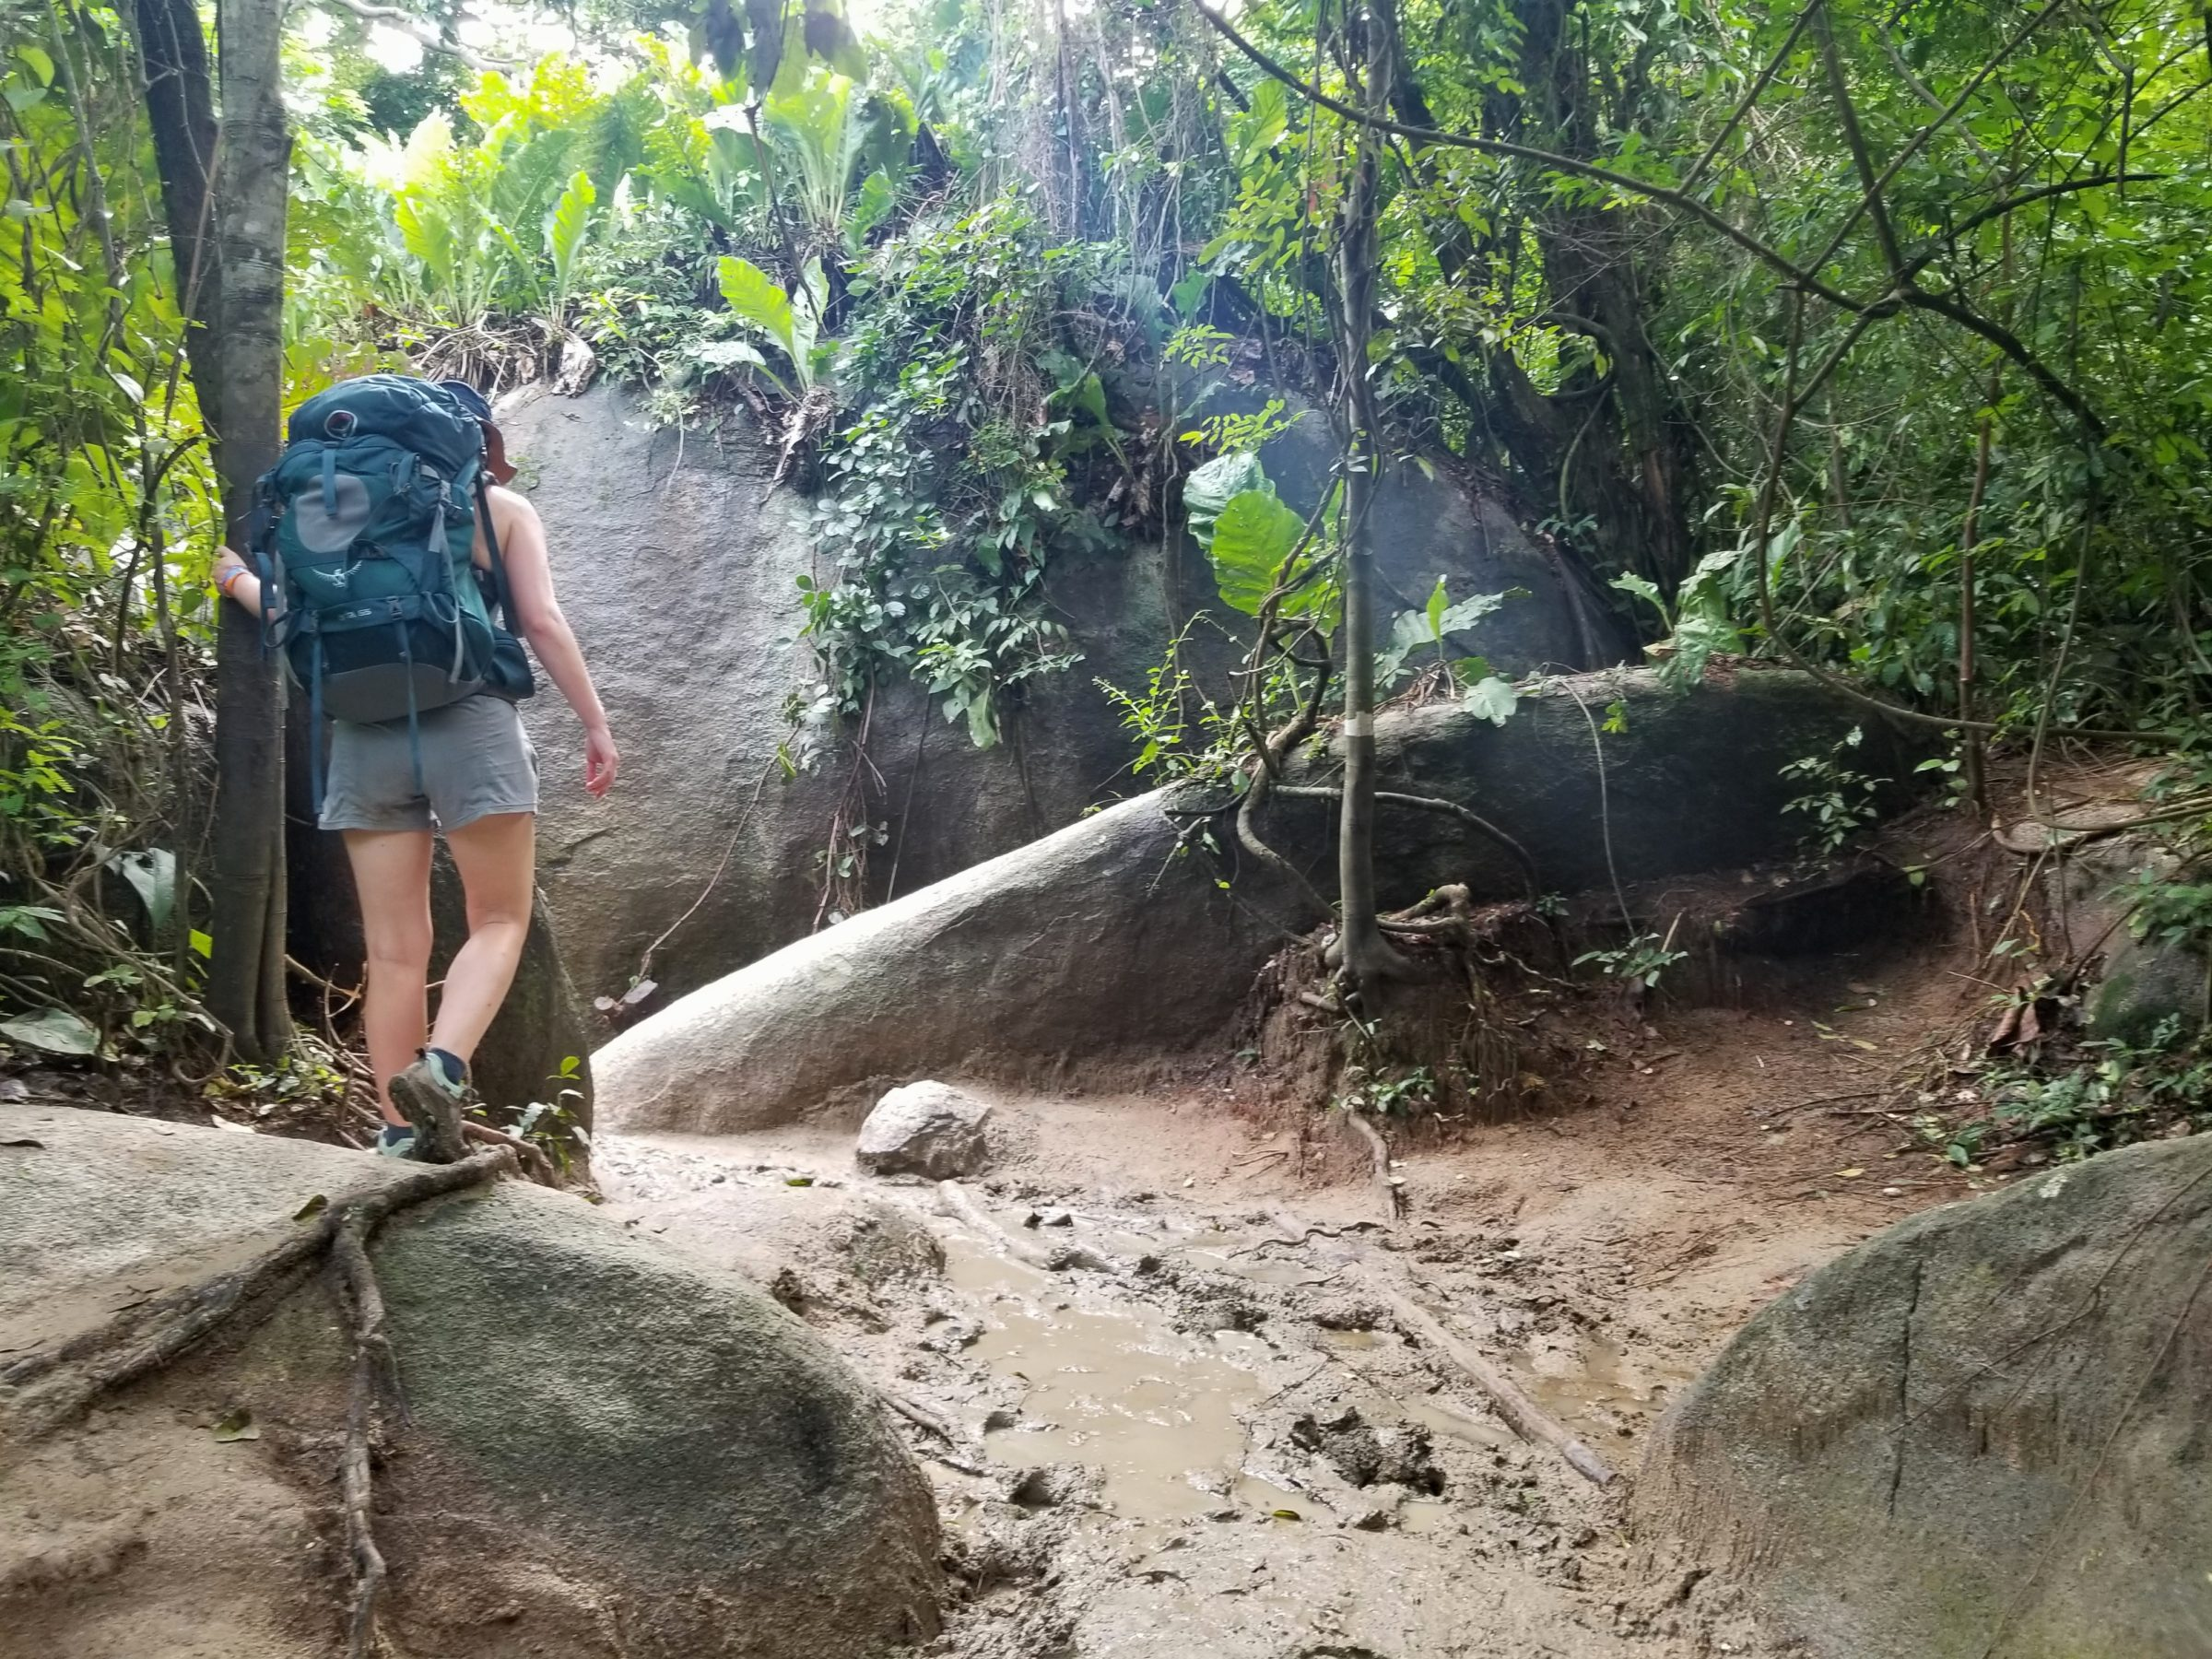 Lower your expectations for hiking in Tayrona National Park, it is extremely muddy.